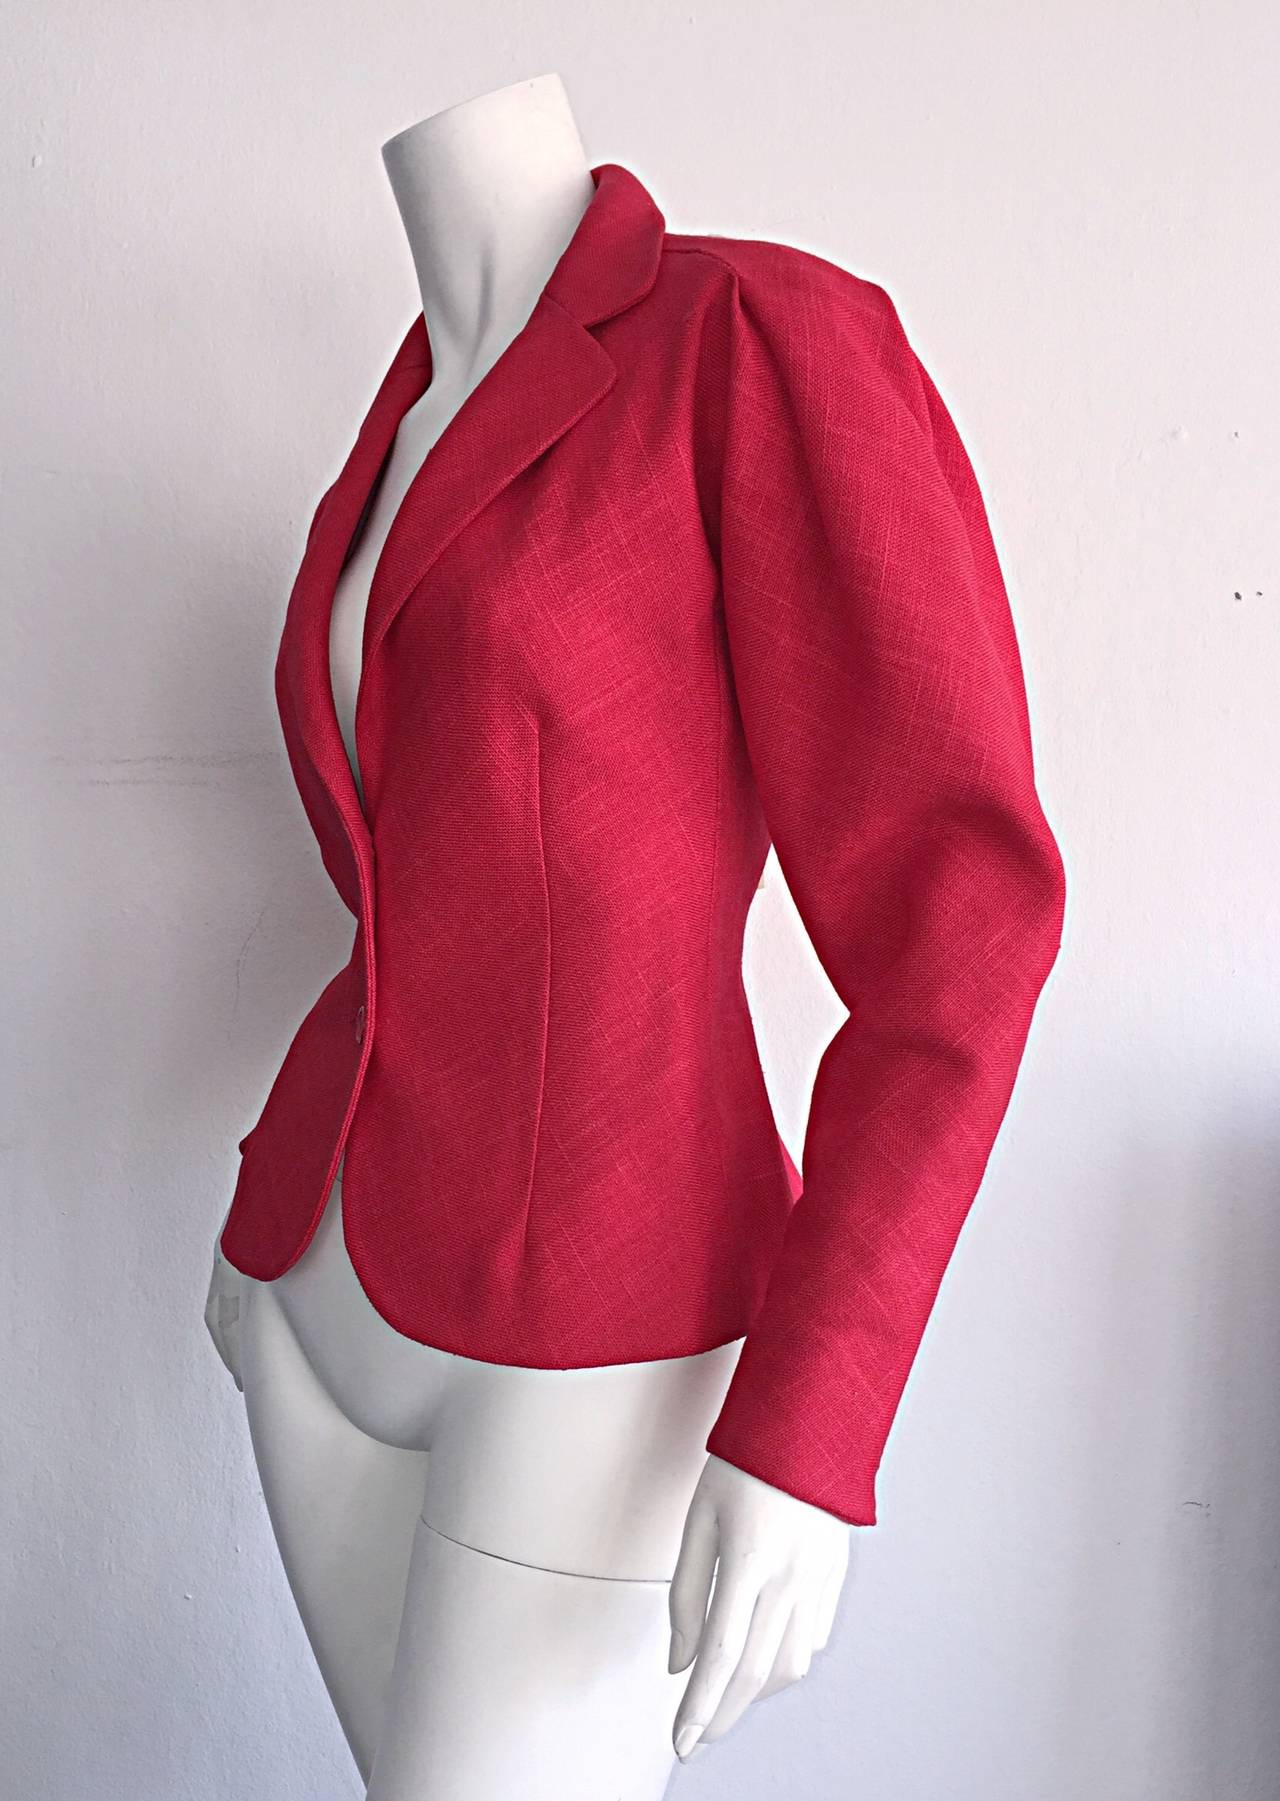 Beautiful vintage Halston linen blazer! Vibrant candy apple red color. Intricate, feminine details, and stitching at sleeves. Two red buttons up the front. Can easiily be dressed up or down. Looks fantastic with jeans, trousers, or a skirt! Fully